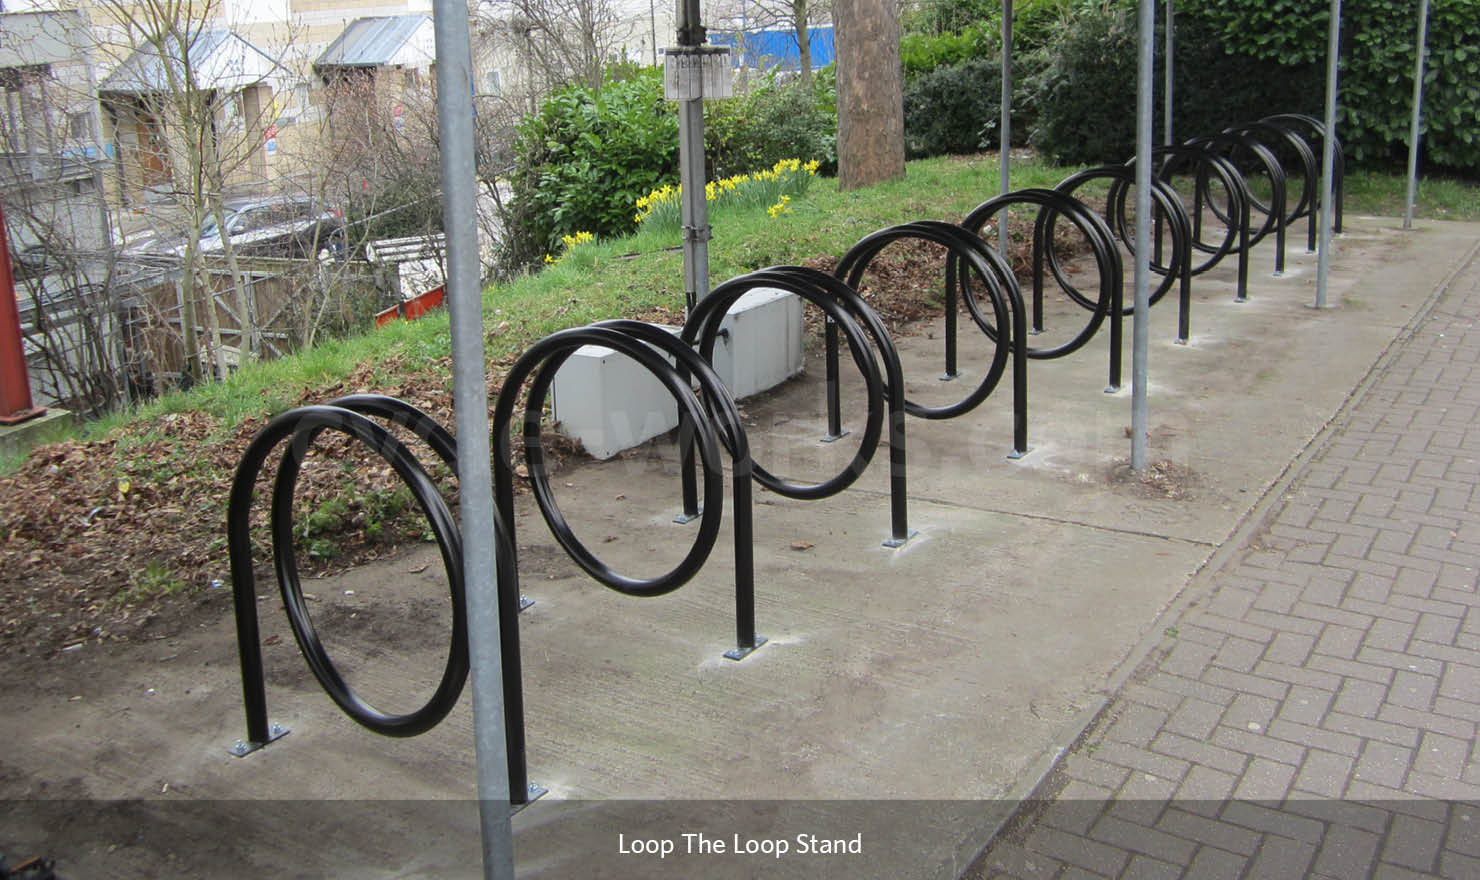 Looped Cycle Stand